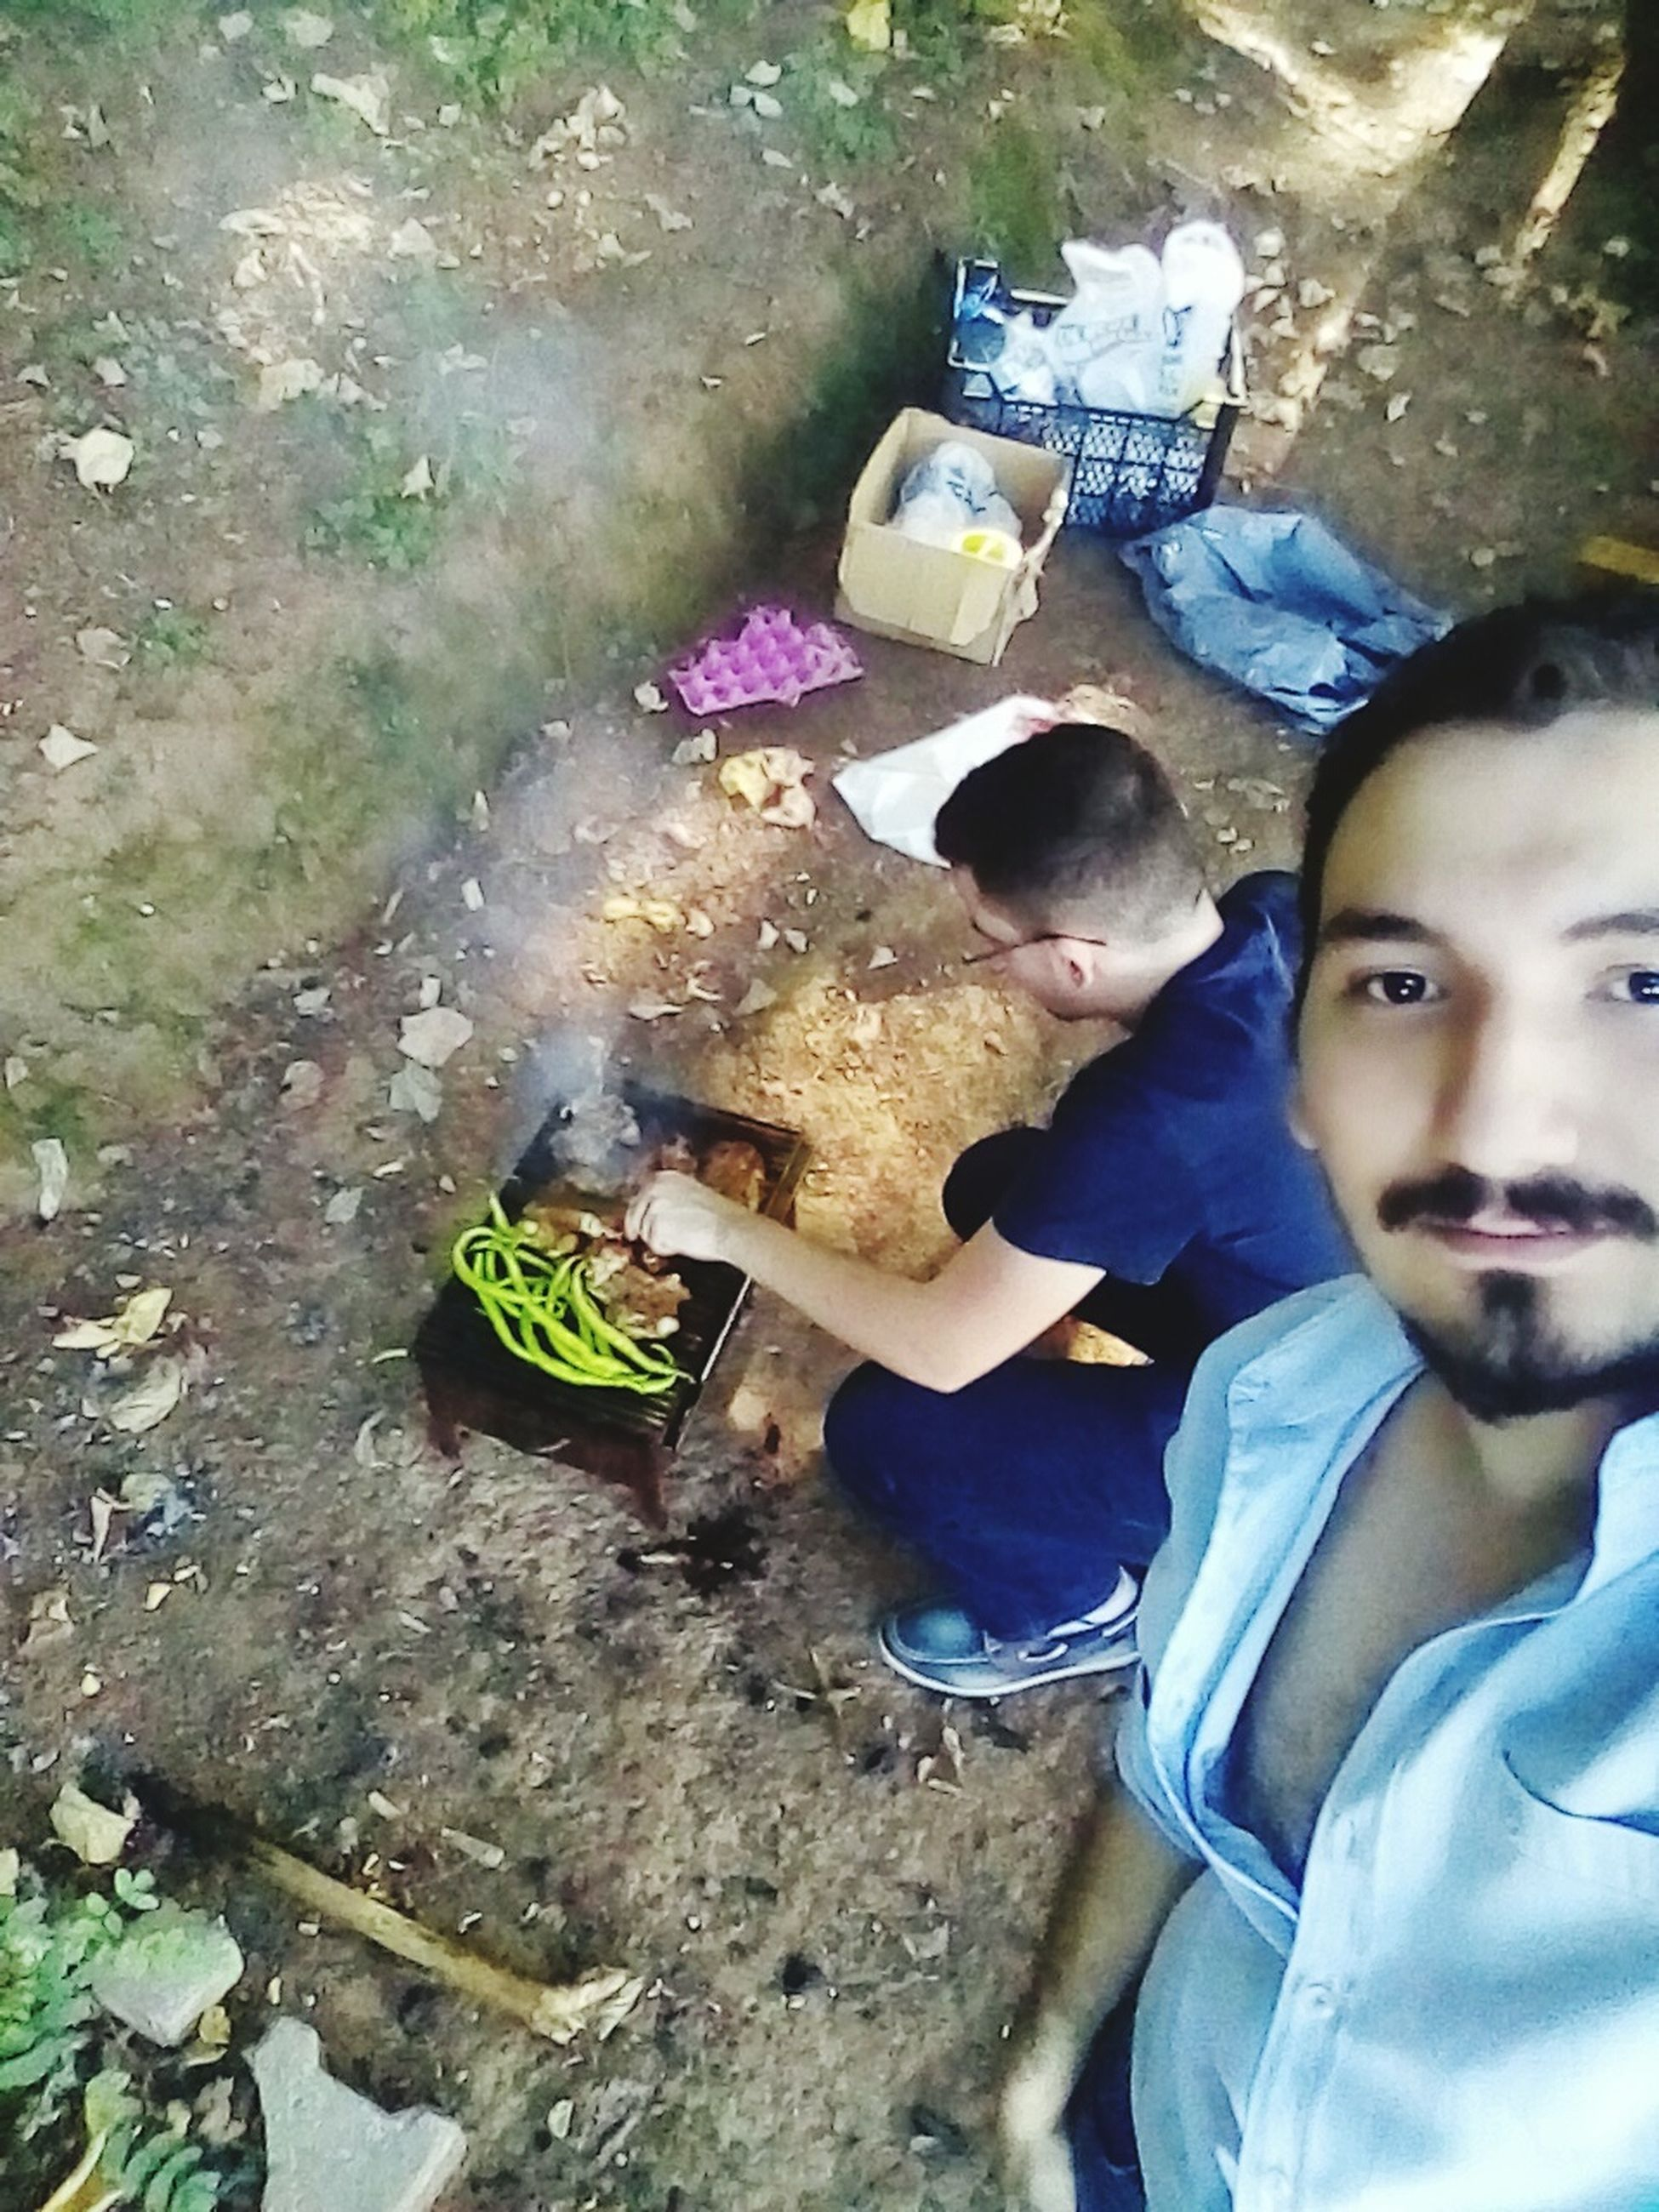 lifestyles, leisure activity, high angle view, childhood, person, casual clothing, boys, sitting, togetherness, day, elementary age, outdoors, smiling, looking at camera, relaxation, girls, happiness, portrait